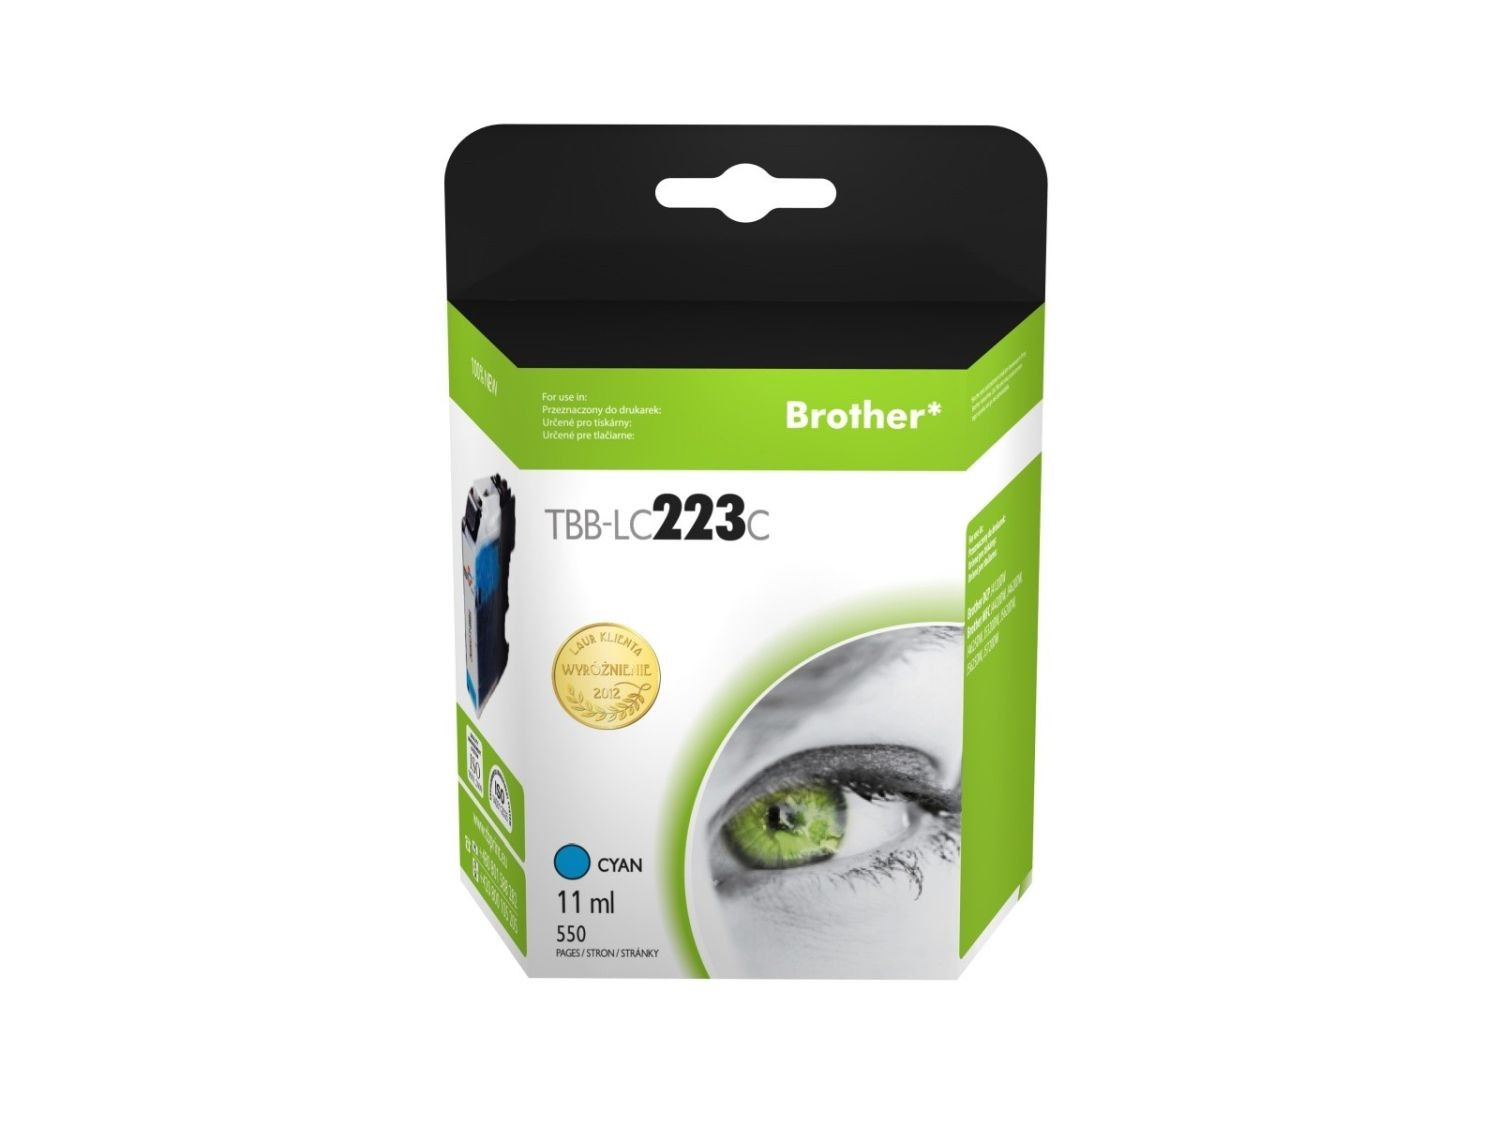 TB Print Tusz do Brother LC223 TBB-LC223C CY